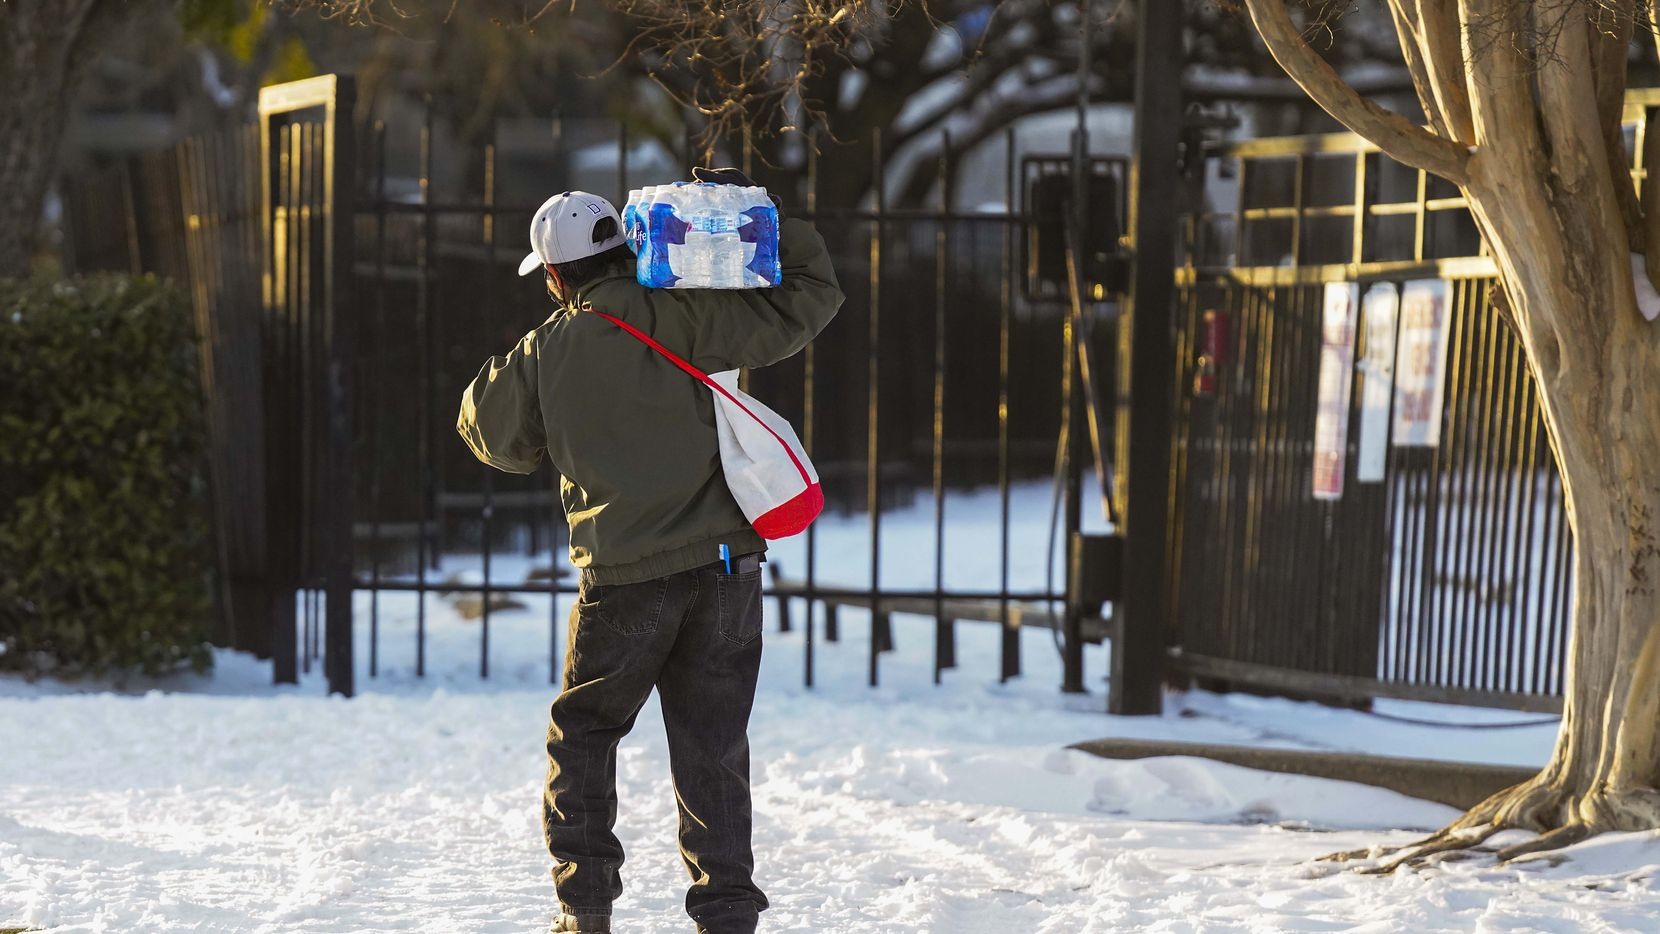 A man walks home with a case of drinking water distributed at the Literacy Achieves nonprofit in Vickery Meadow to nearby residents living without water after a winter storm brought snow and continued freezing temperatures to North Texas in February.